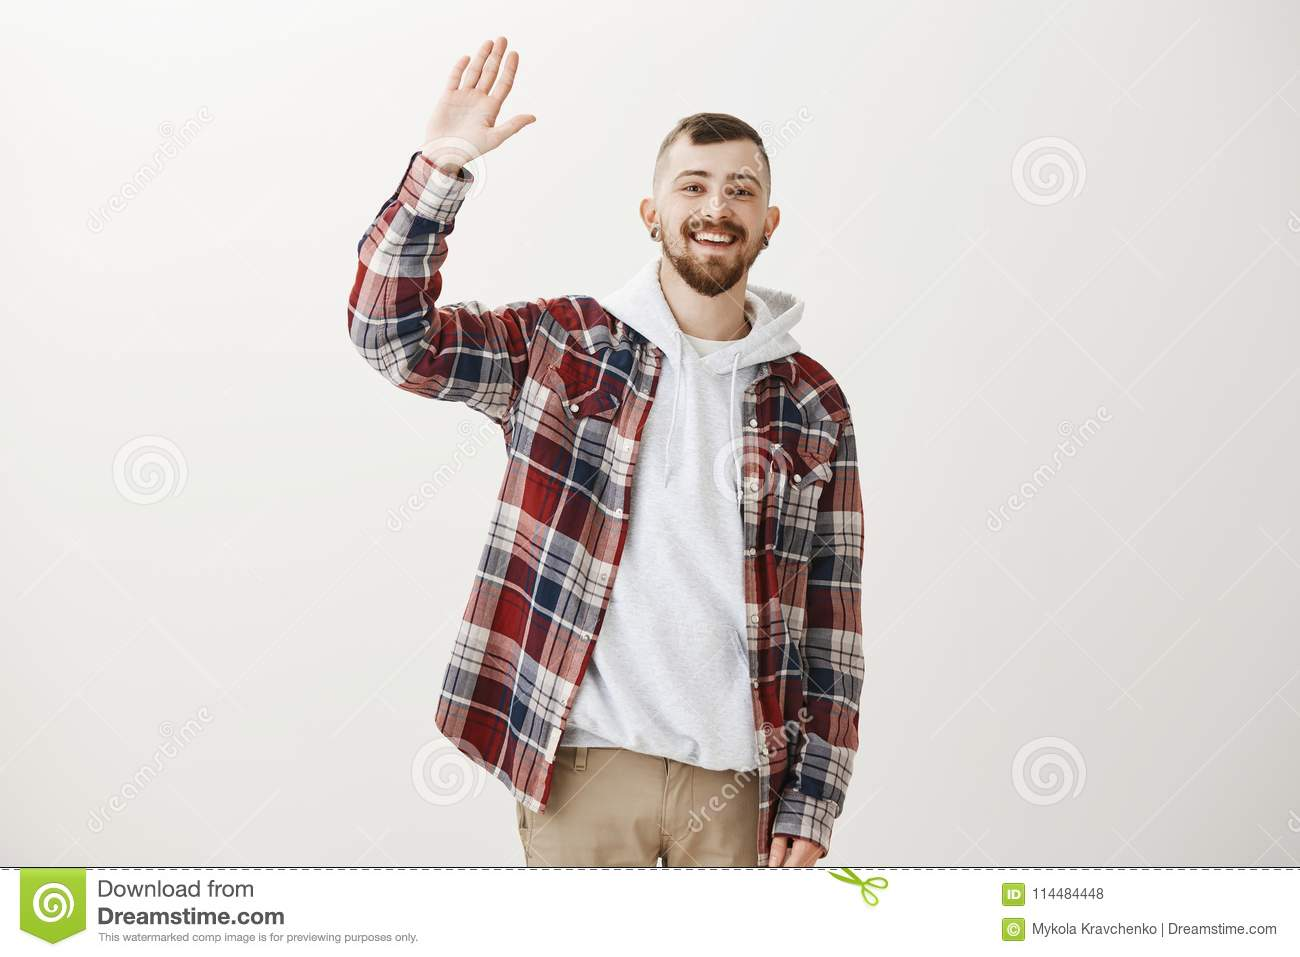 Carefree friendly male student in stylish clothes raising palm to download carefree friendly male student in stylish clothes raising palm to give high five m4hsunfo